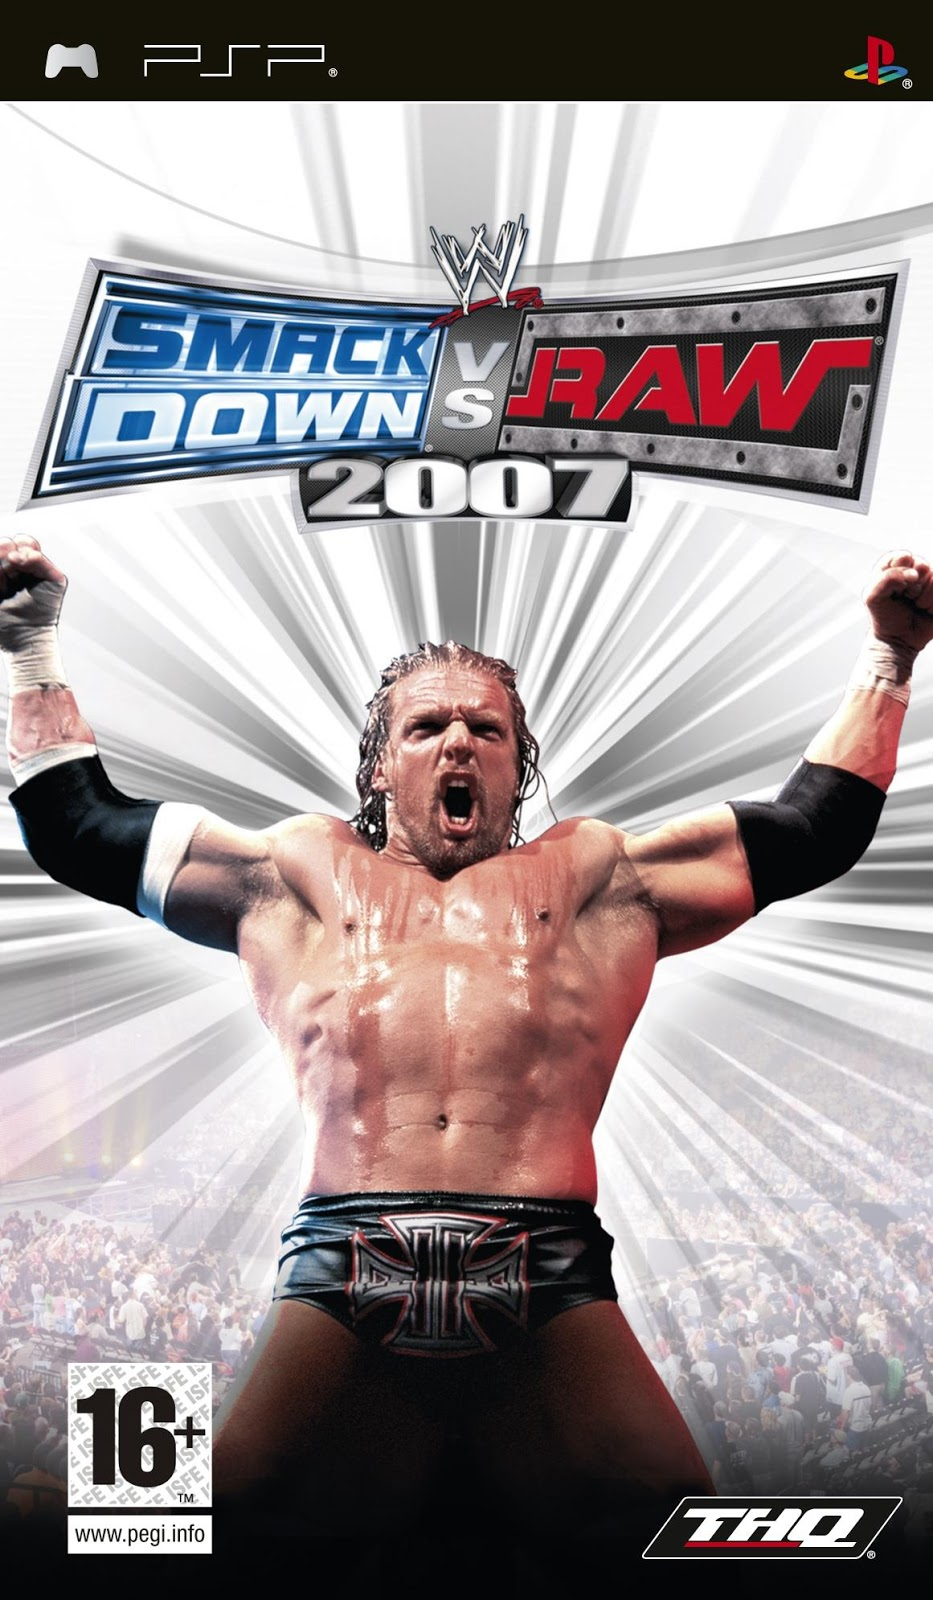 PC GAMES BEST: WWE SmackDown vs RAW 2007 PSP FOR ANDROID GAMES